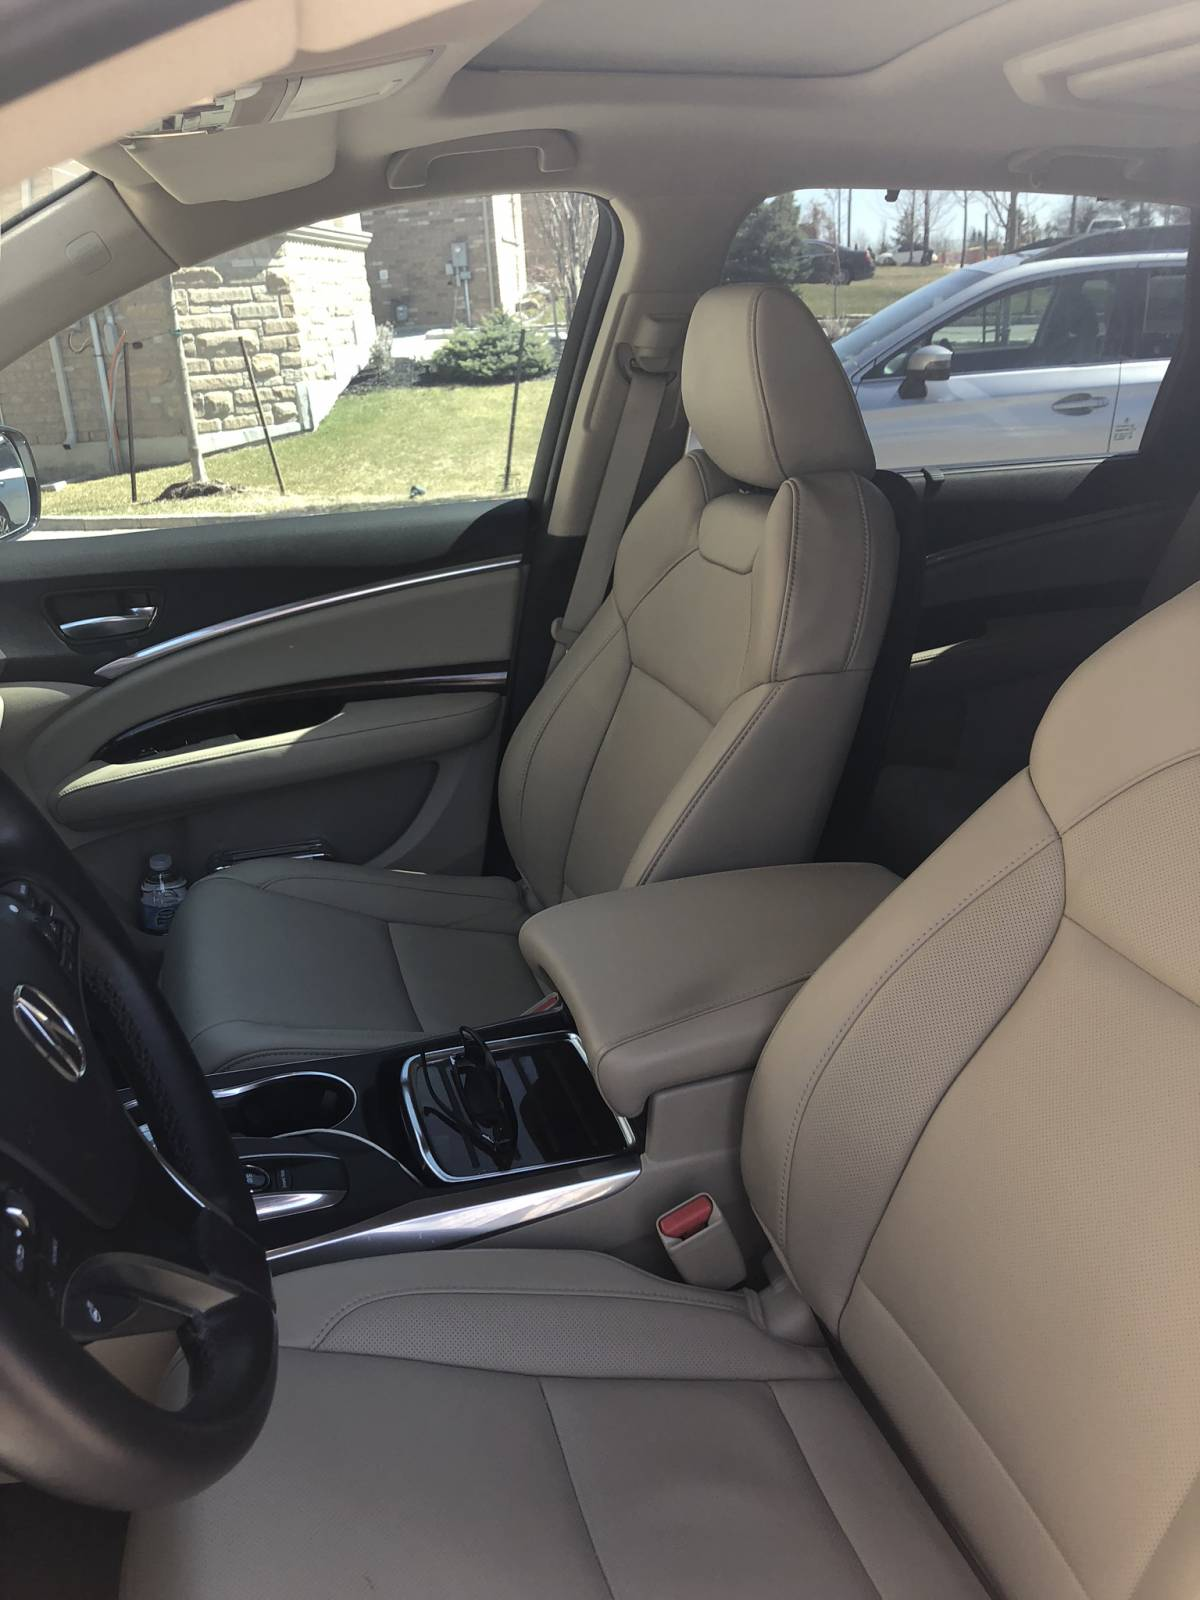 Lease Takeover In Vaughan ON Acura MDX Tech Automatic AWD ID - Lease an acura mdx